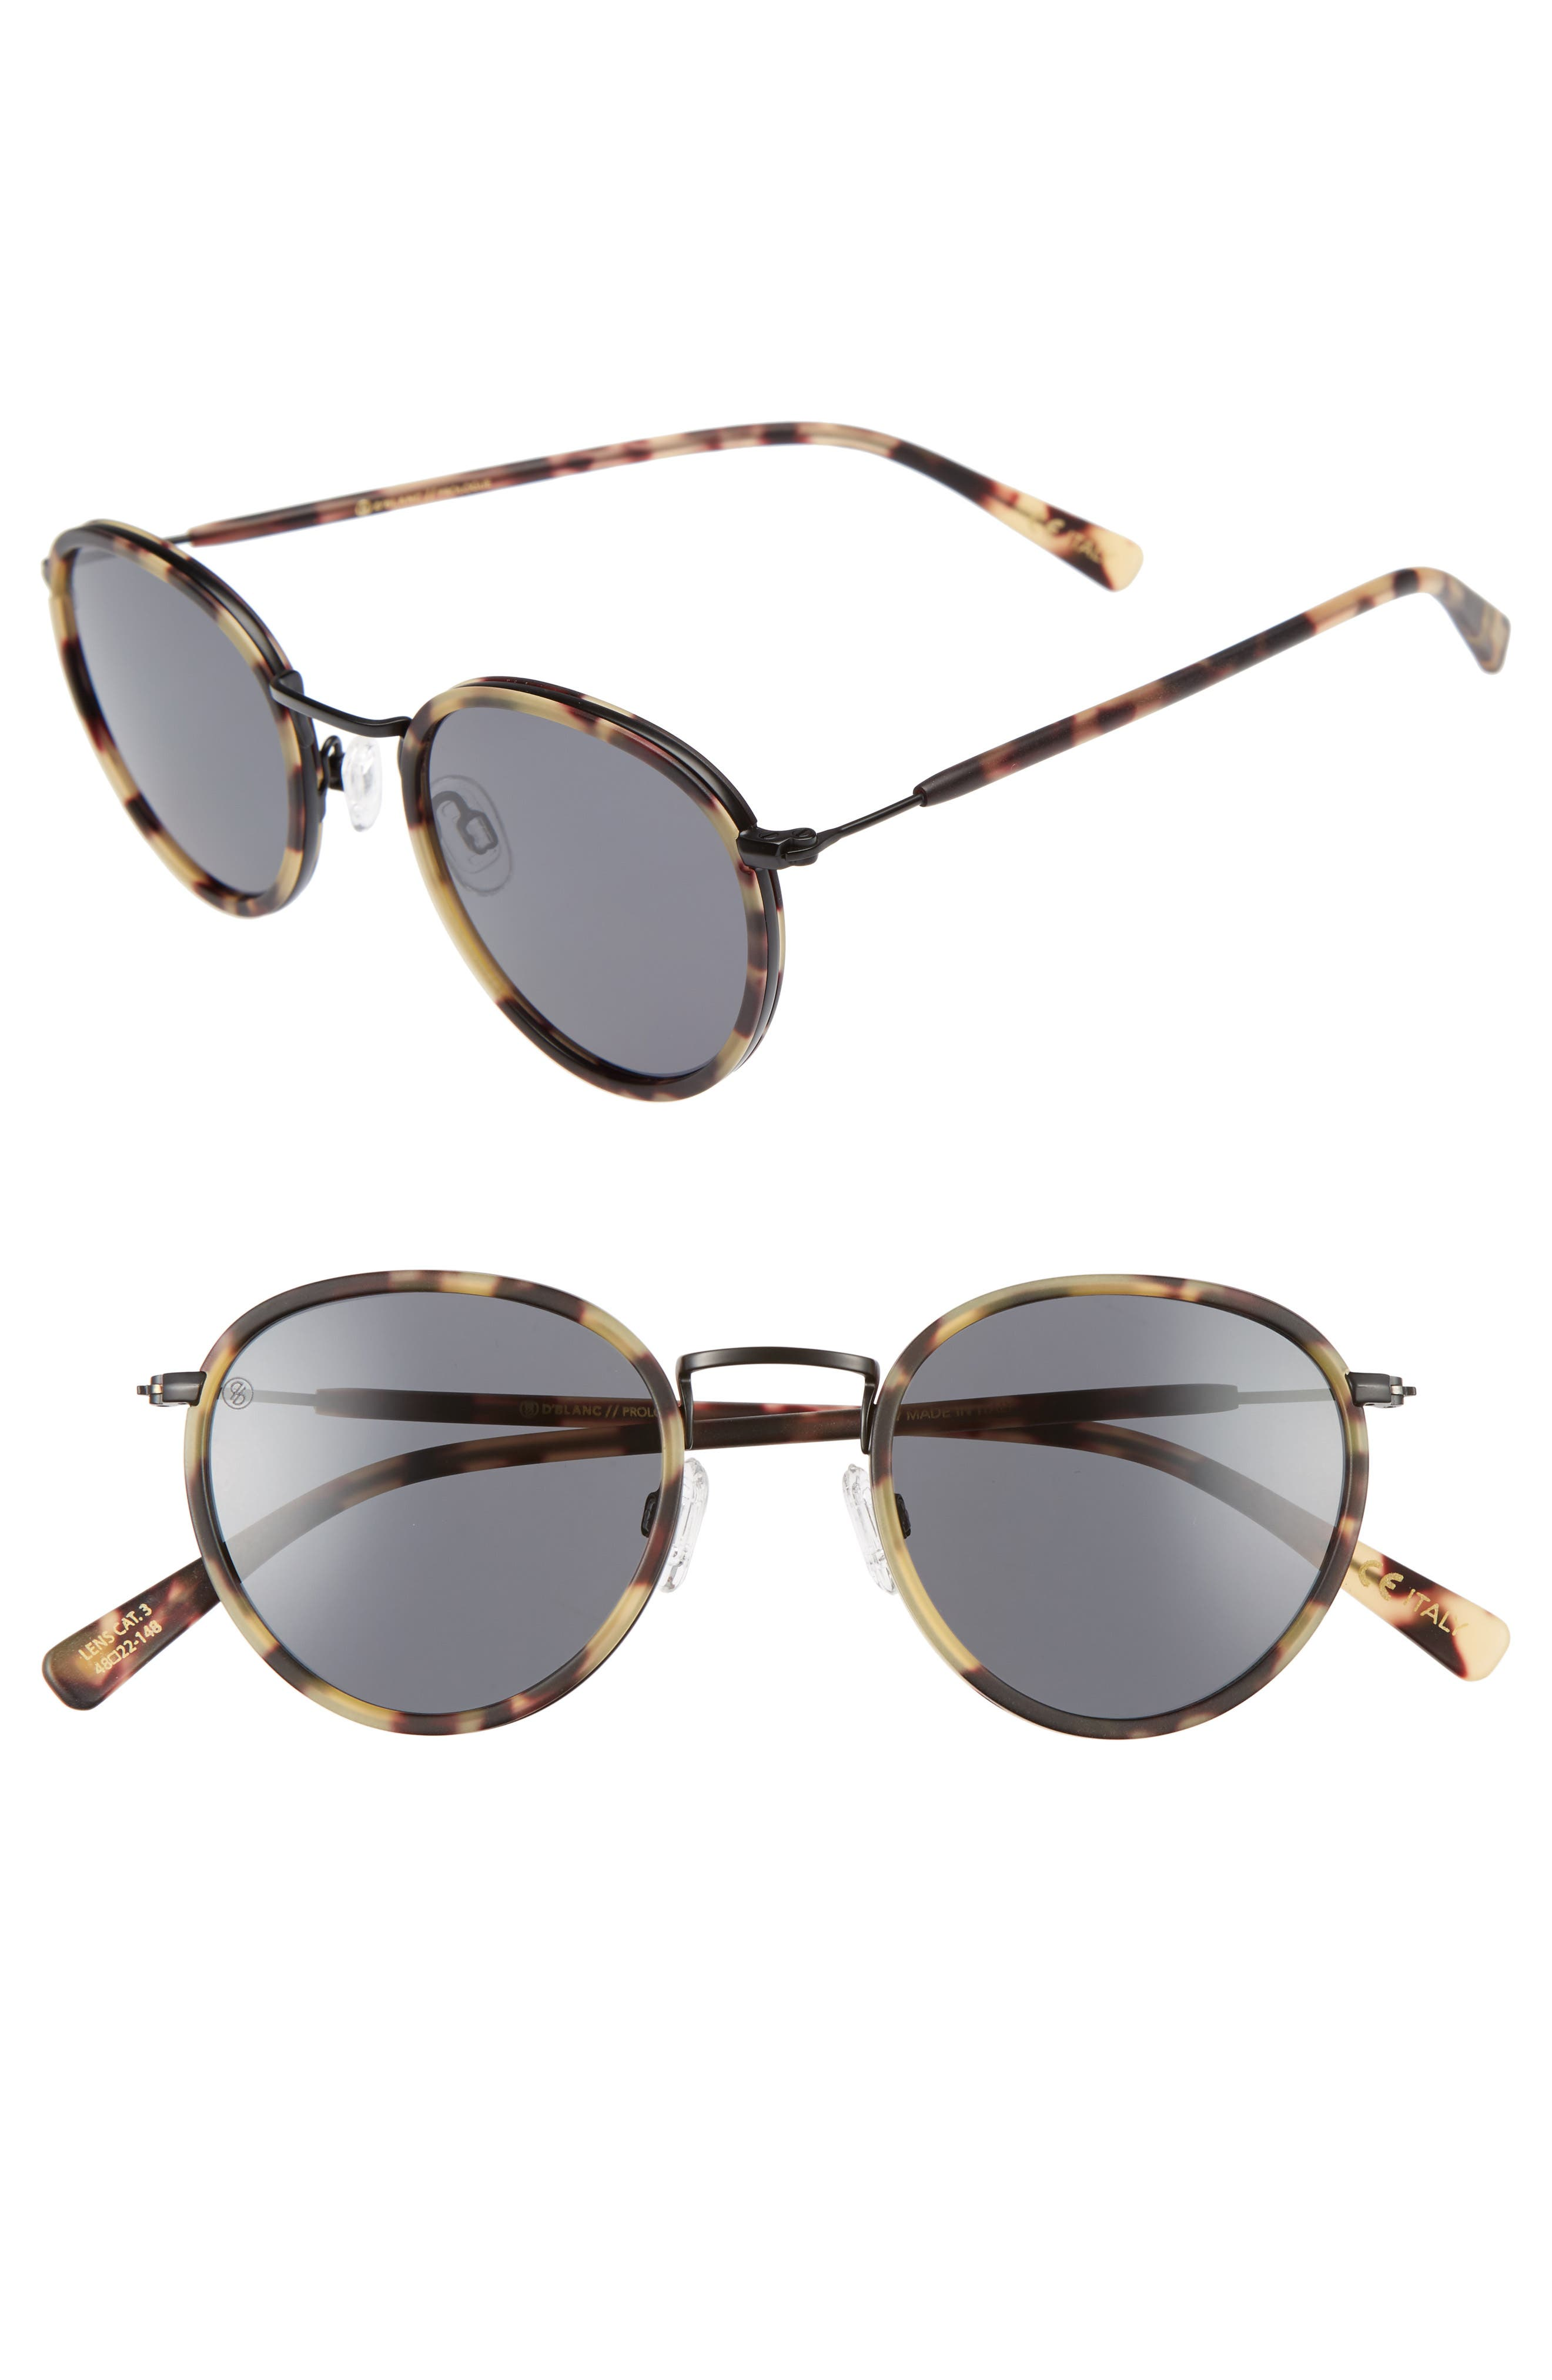 Alternate Image 1 Selected - D'BLANC Prologue 48mm Round Sunglasses